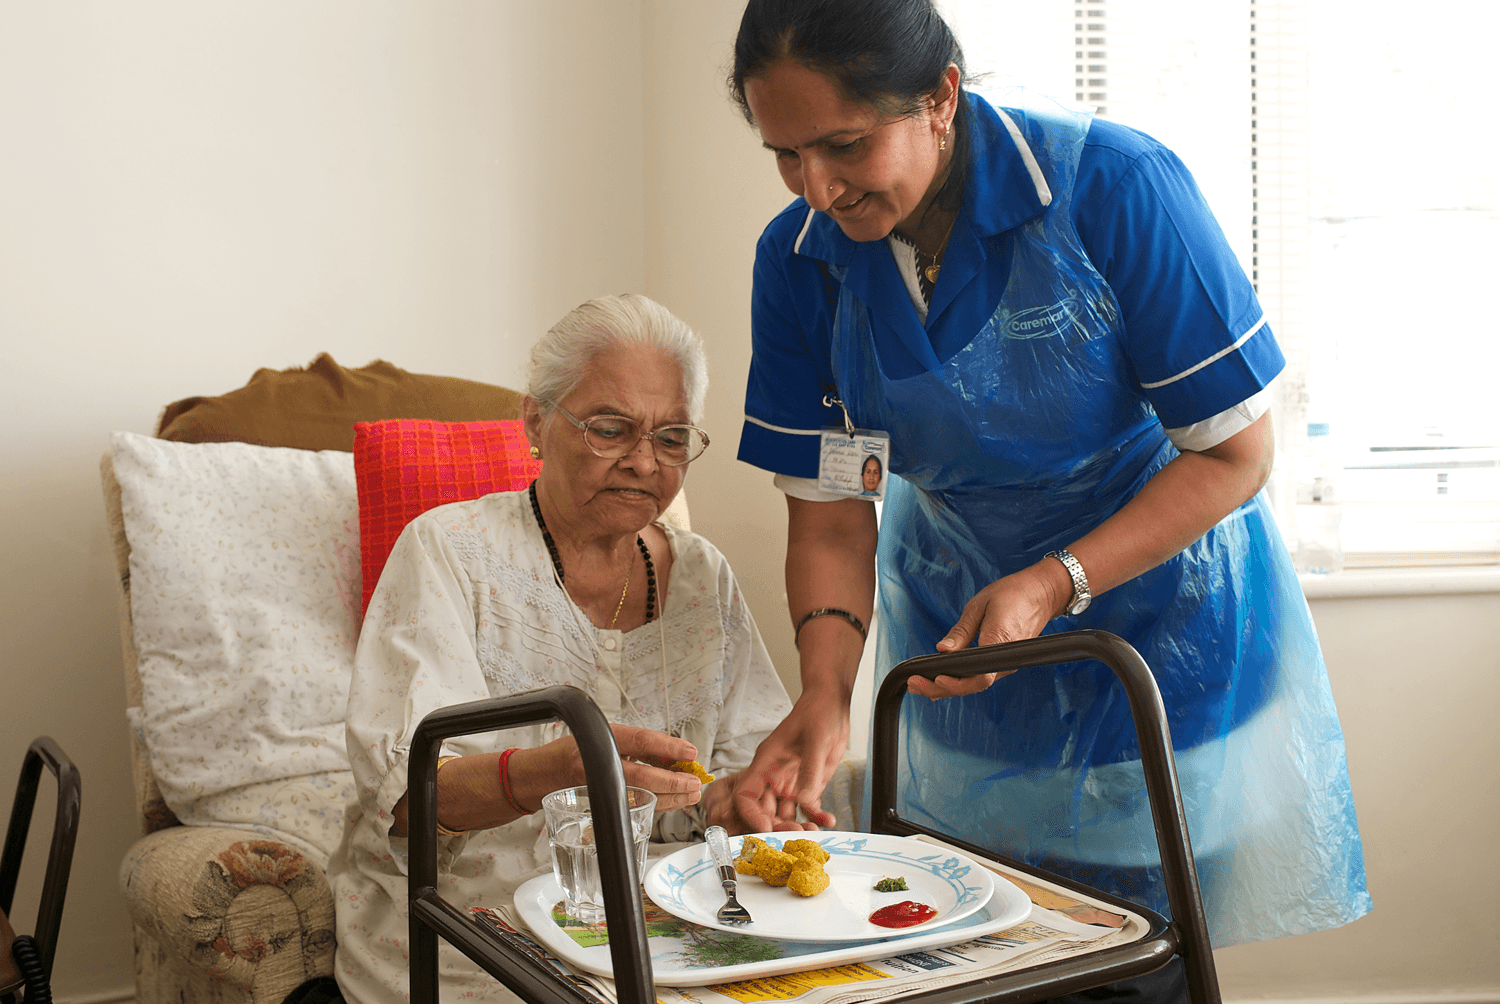 Home Care Worker Services Trust Caremark With The Ones You Love